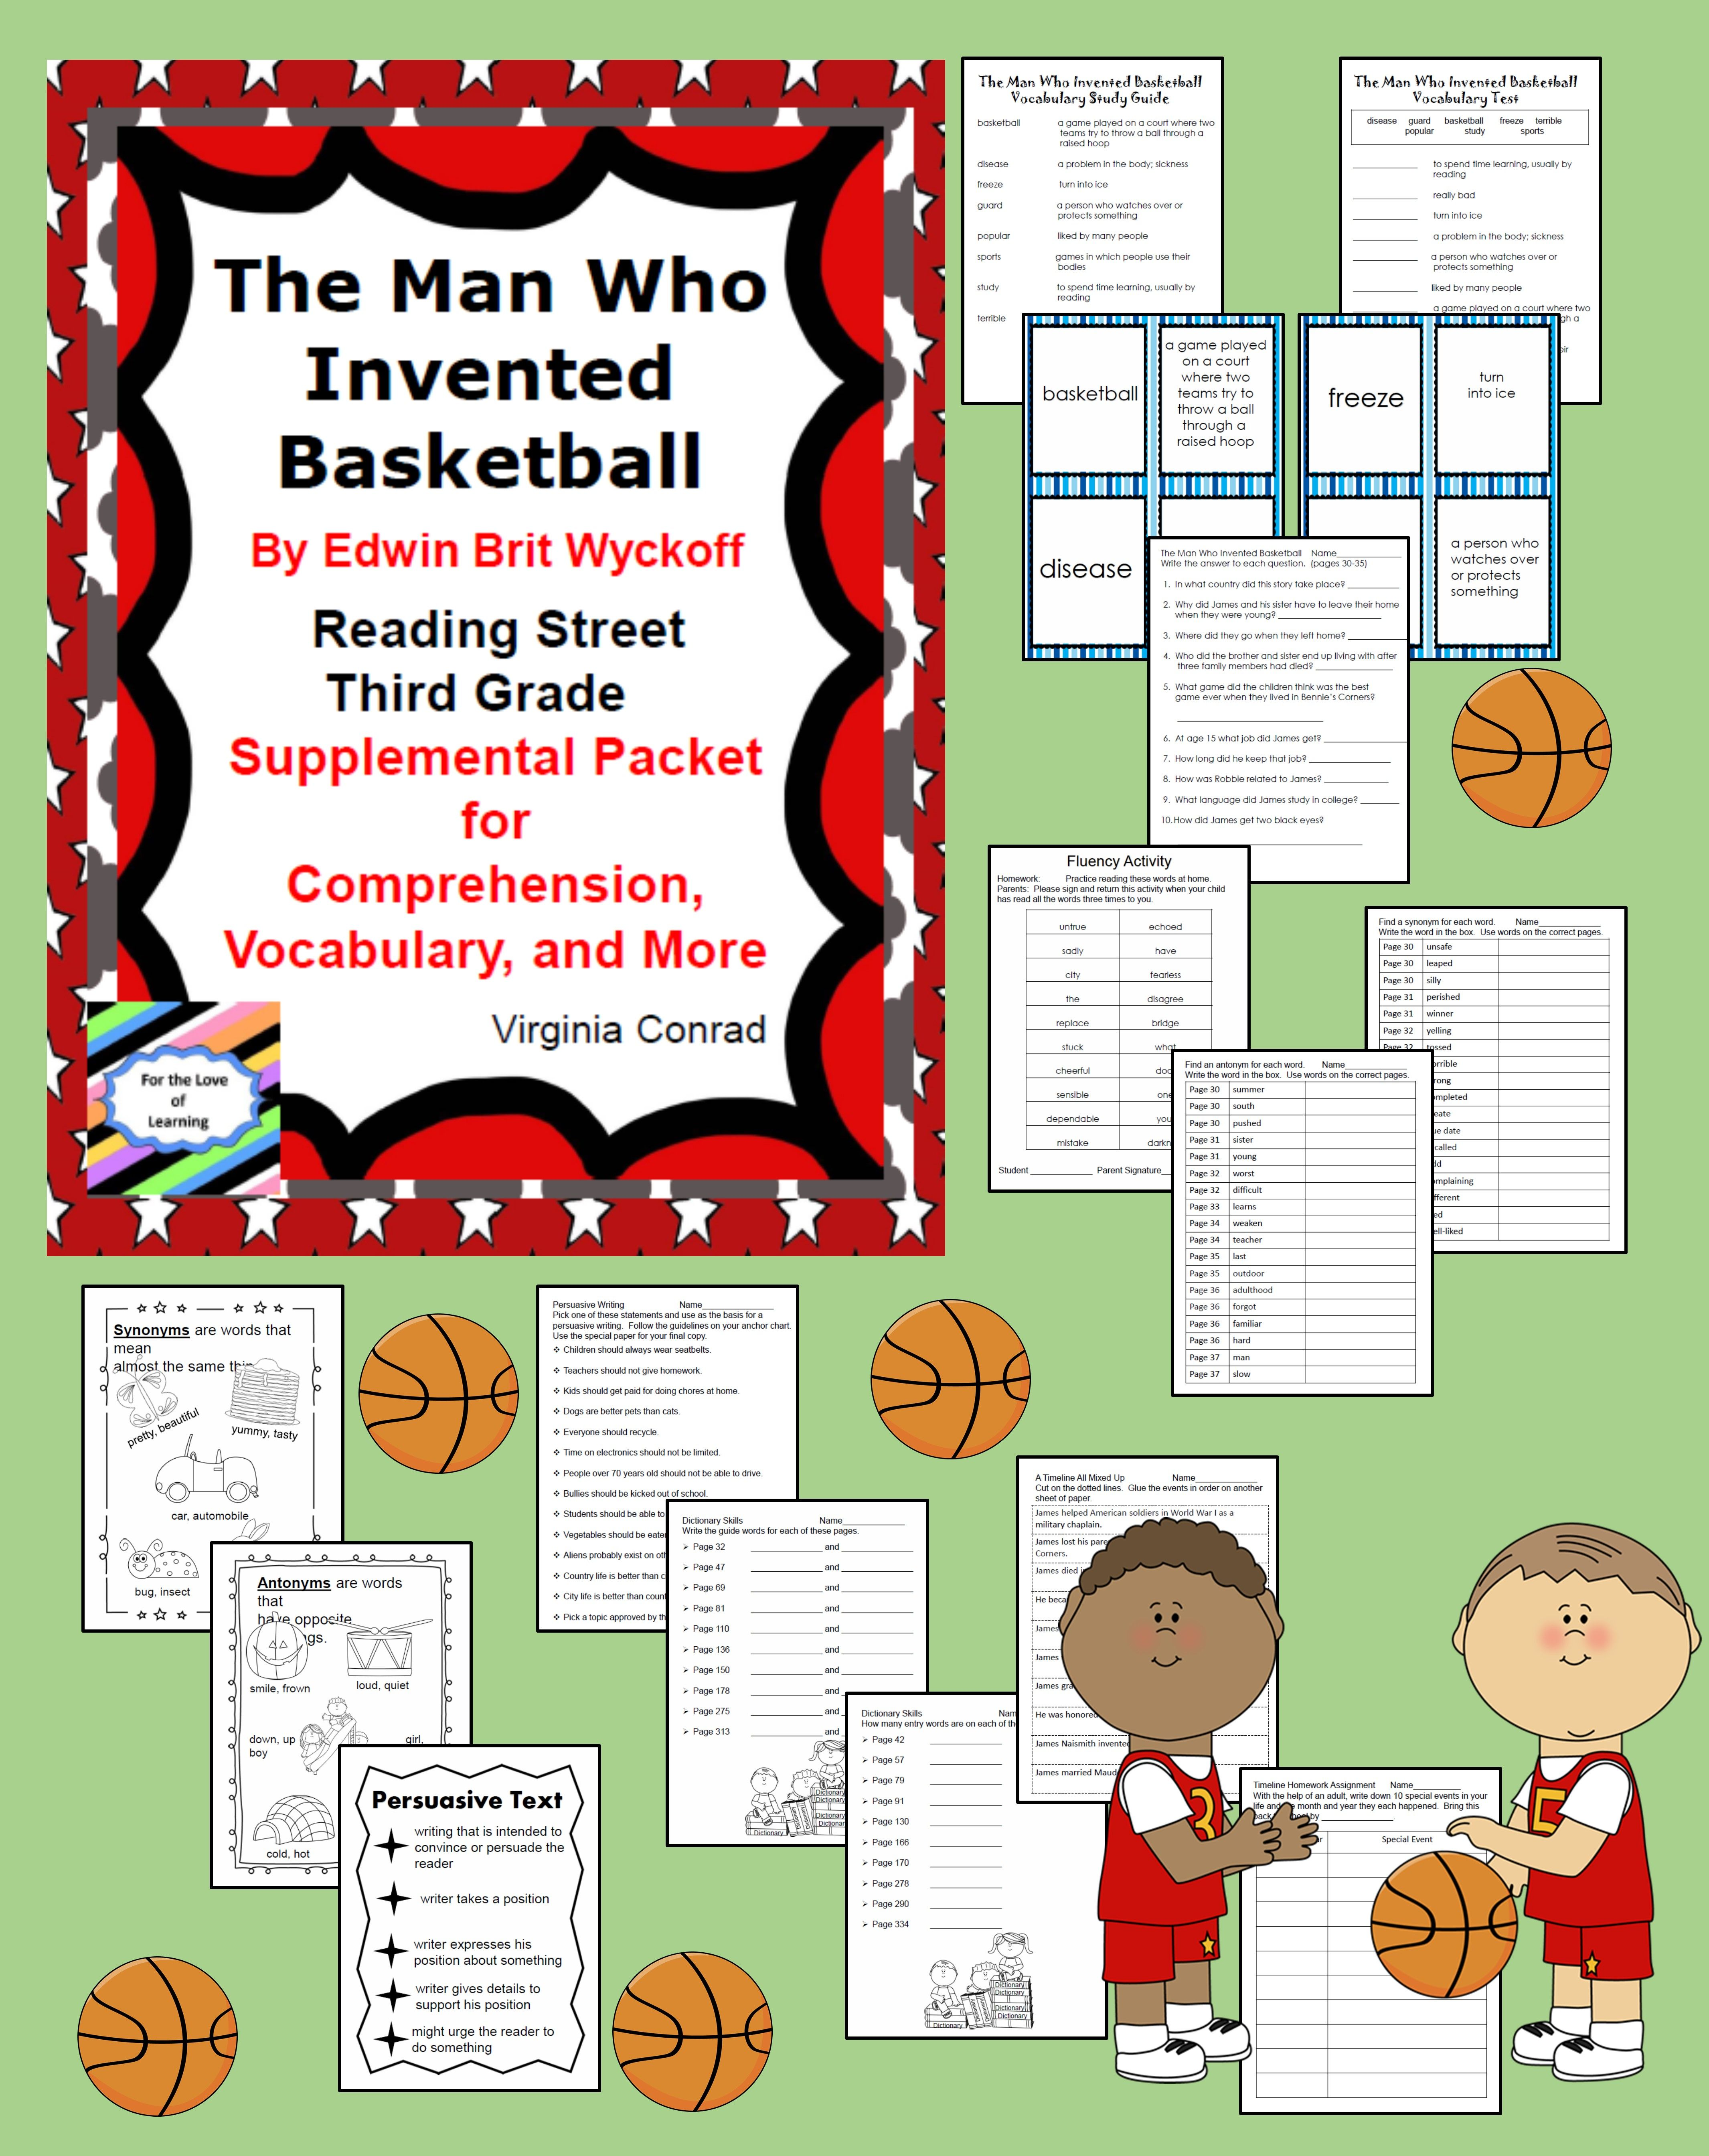 The Man Who Invented Basketball Supplemental Packet